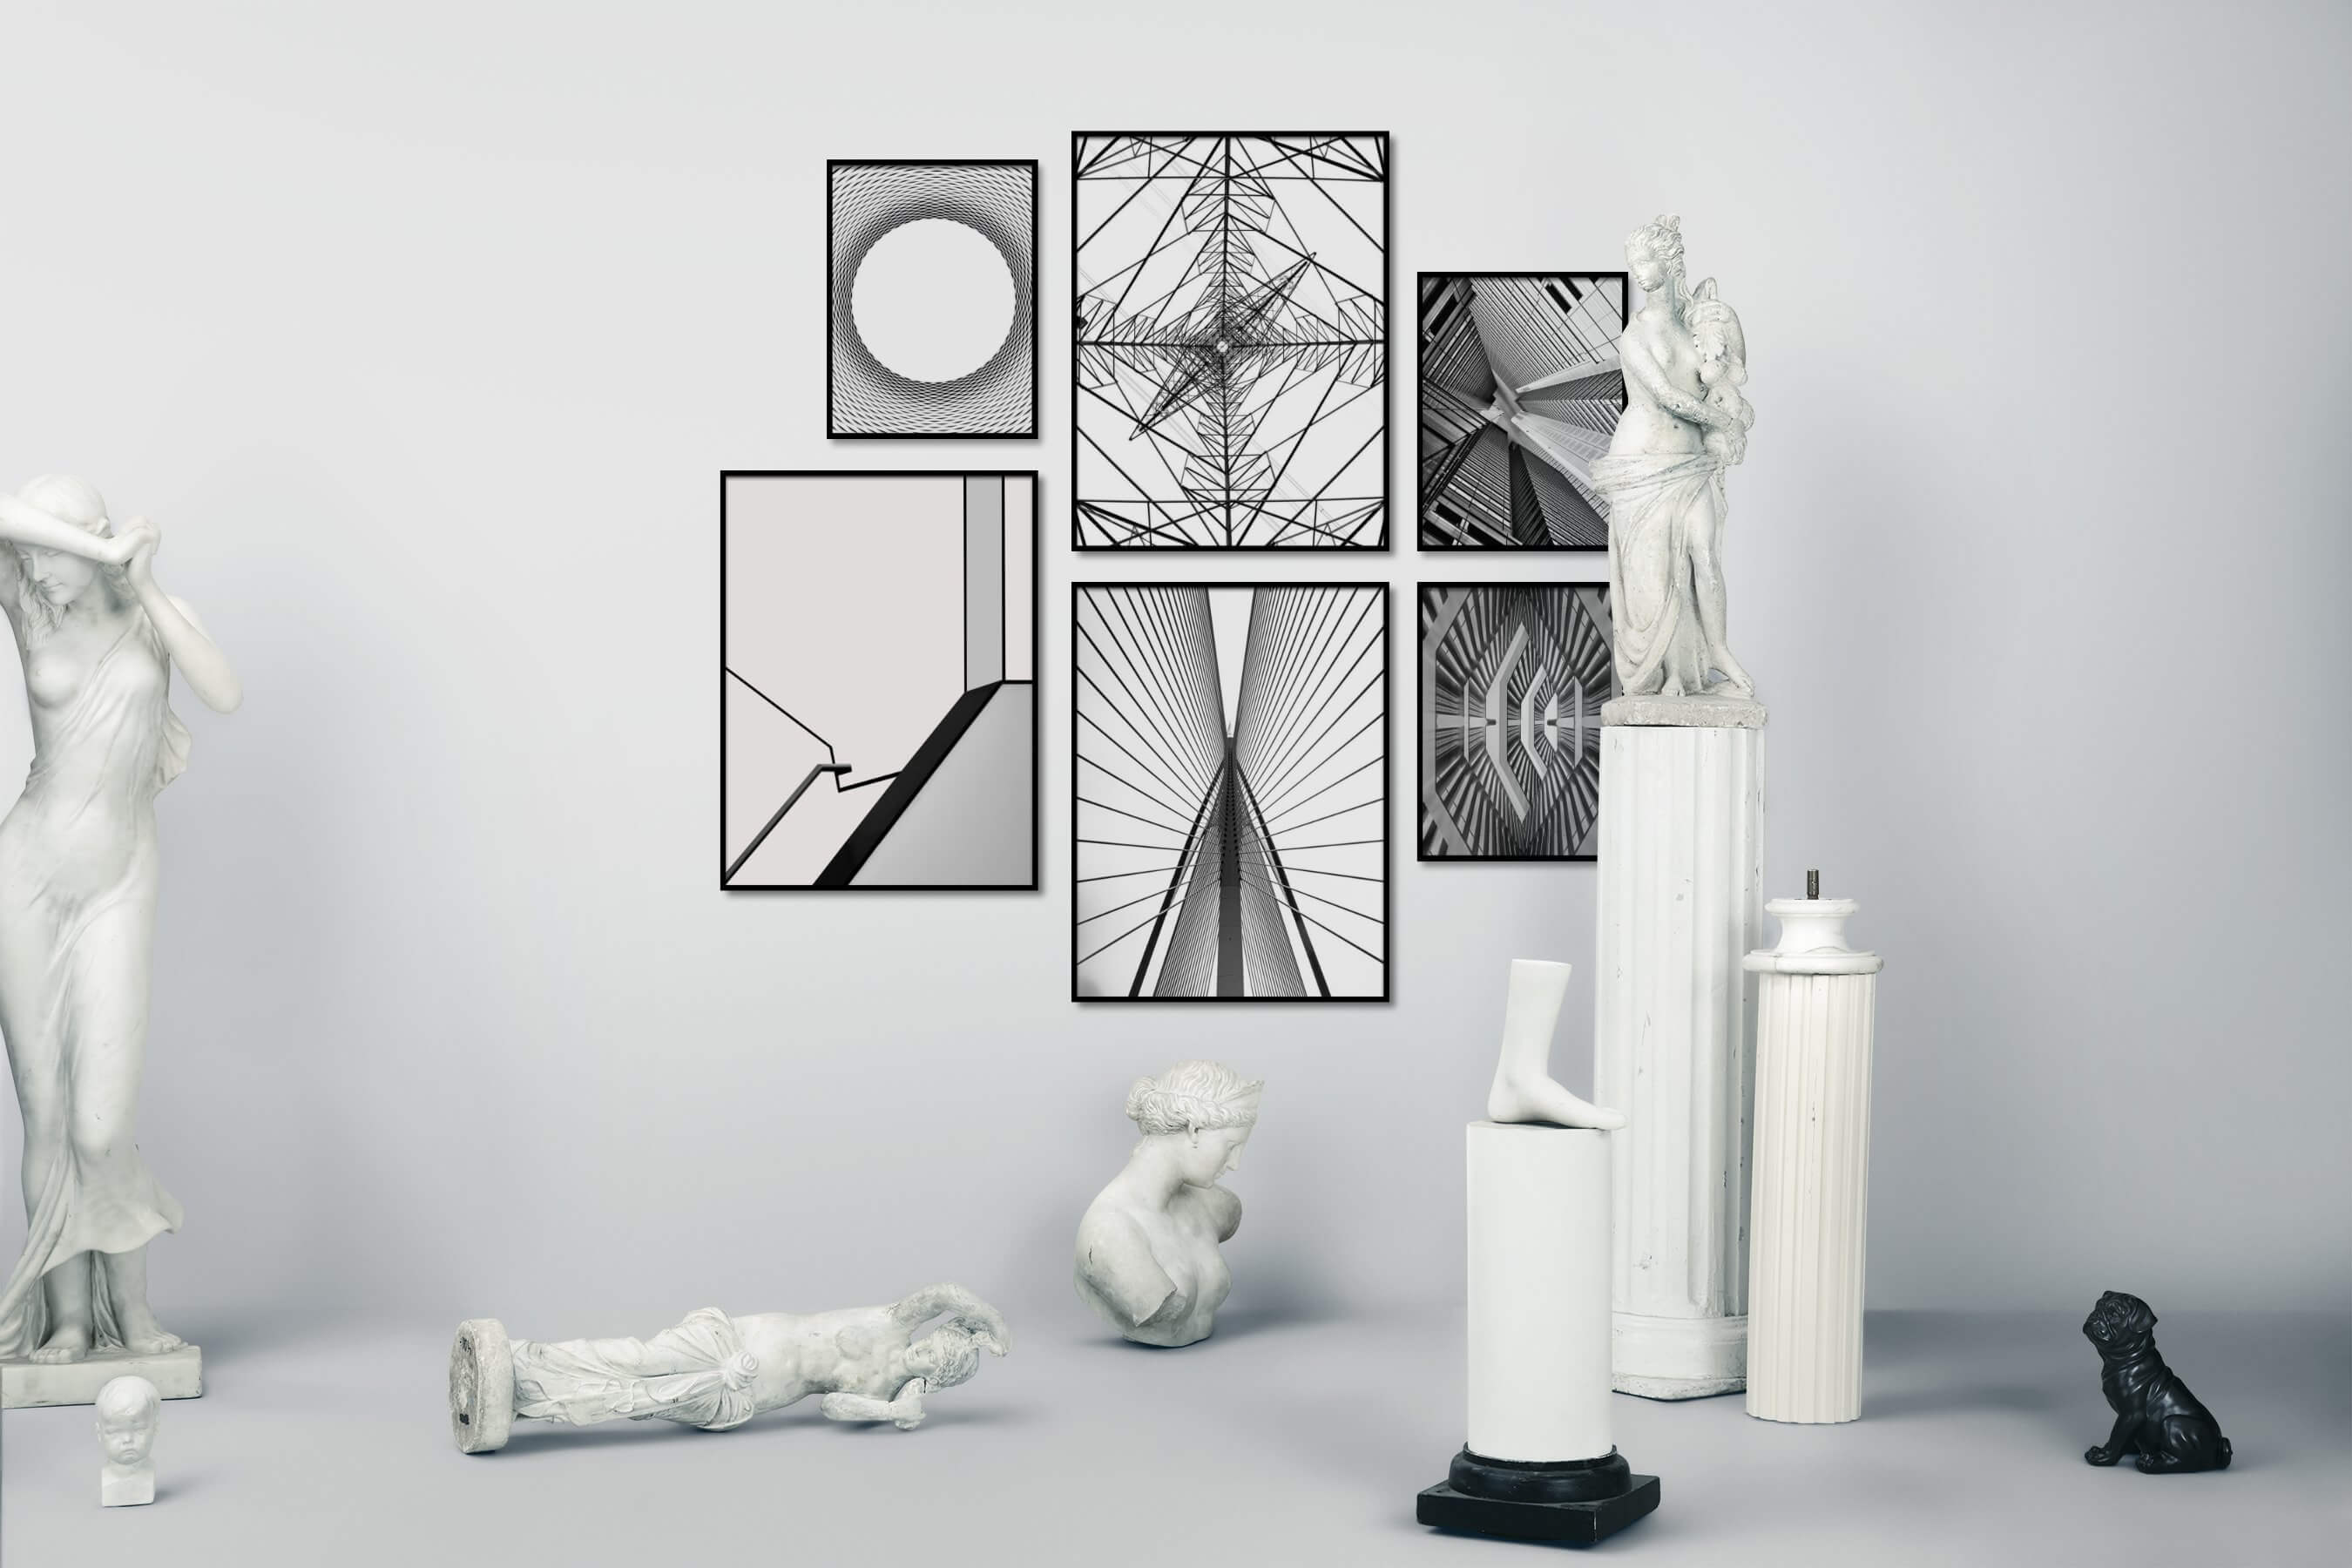 Gallery wall idea with six framed pictures arranged on a wall depicting Black & White, For the Minimalist, For the Maximalist, For the Moderate, and City Life